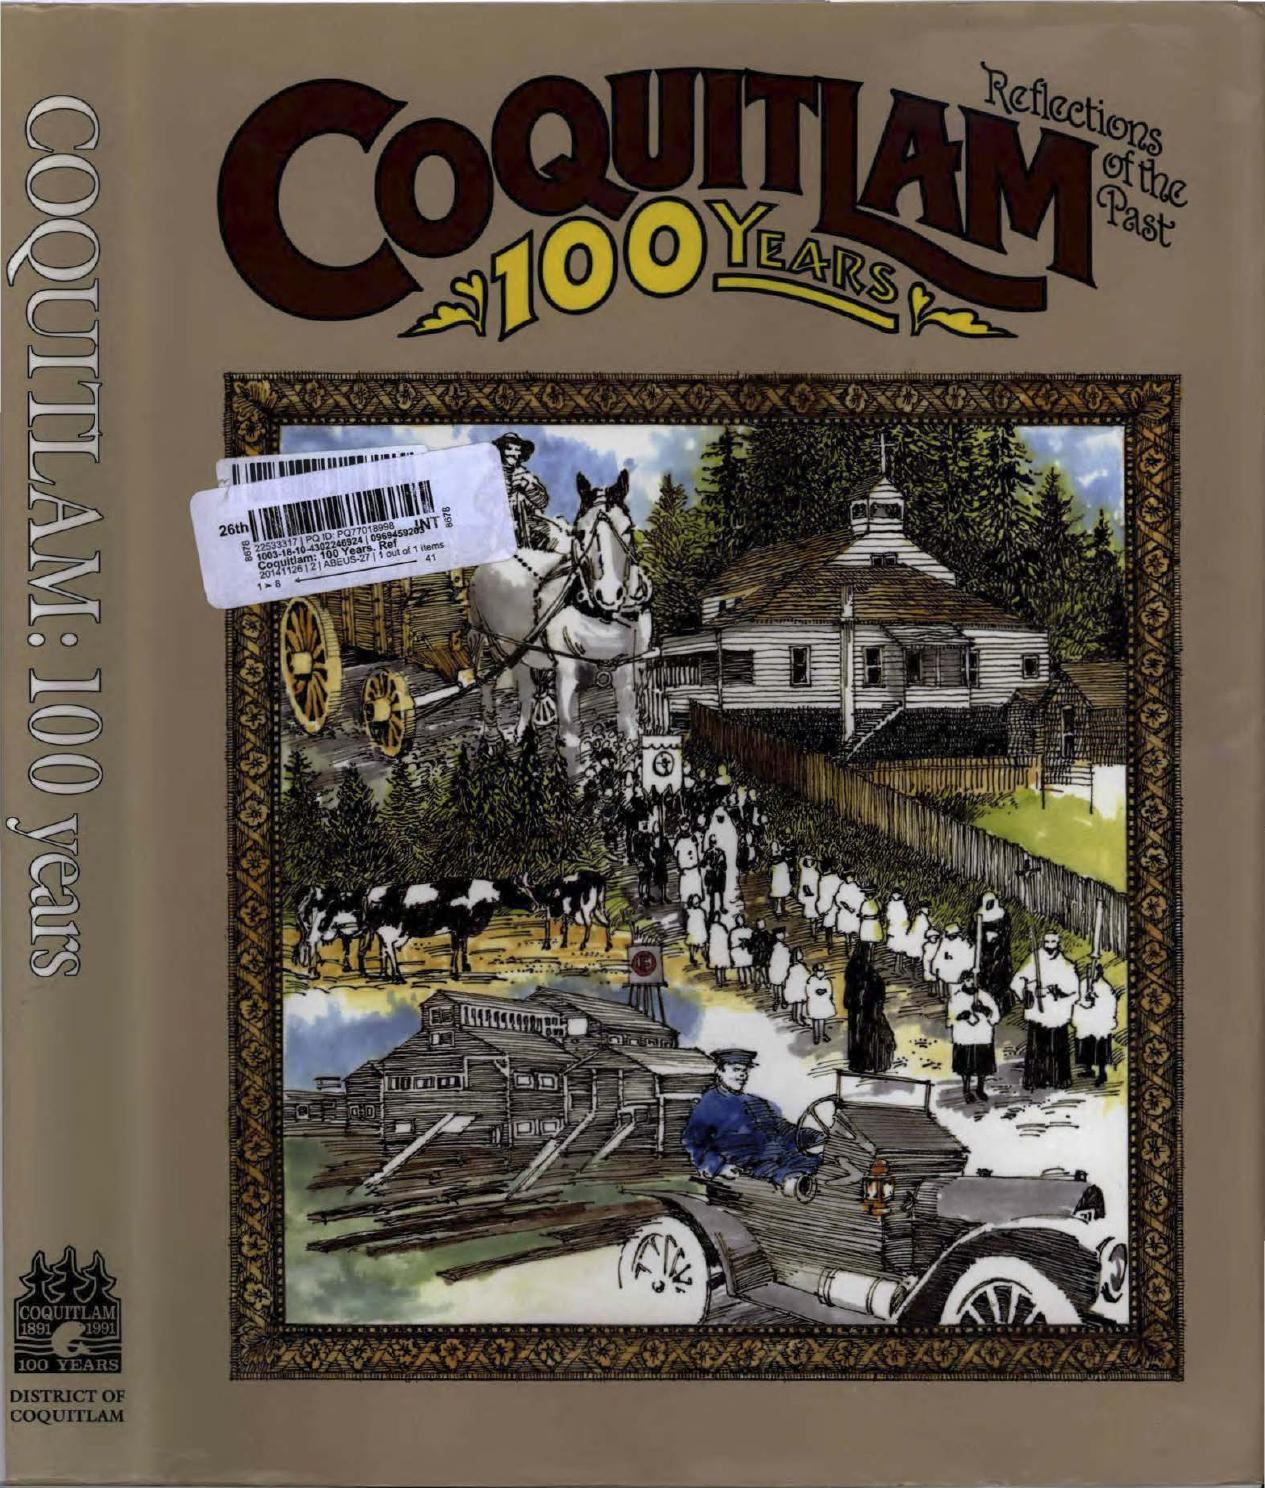 8904084a4f Coquitlam 100 years reflections of the past by City of Coquitlam - issuu